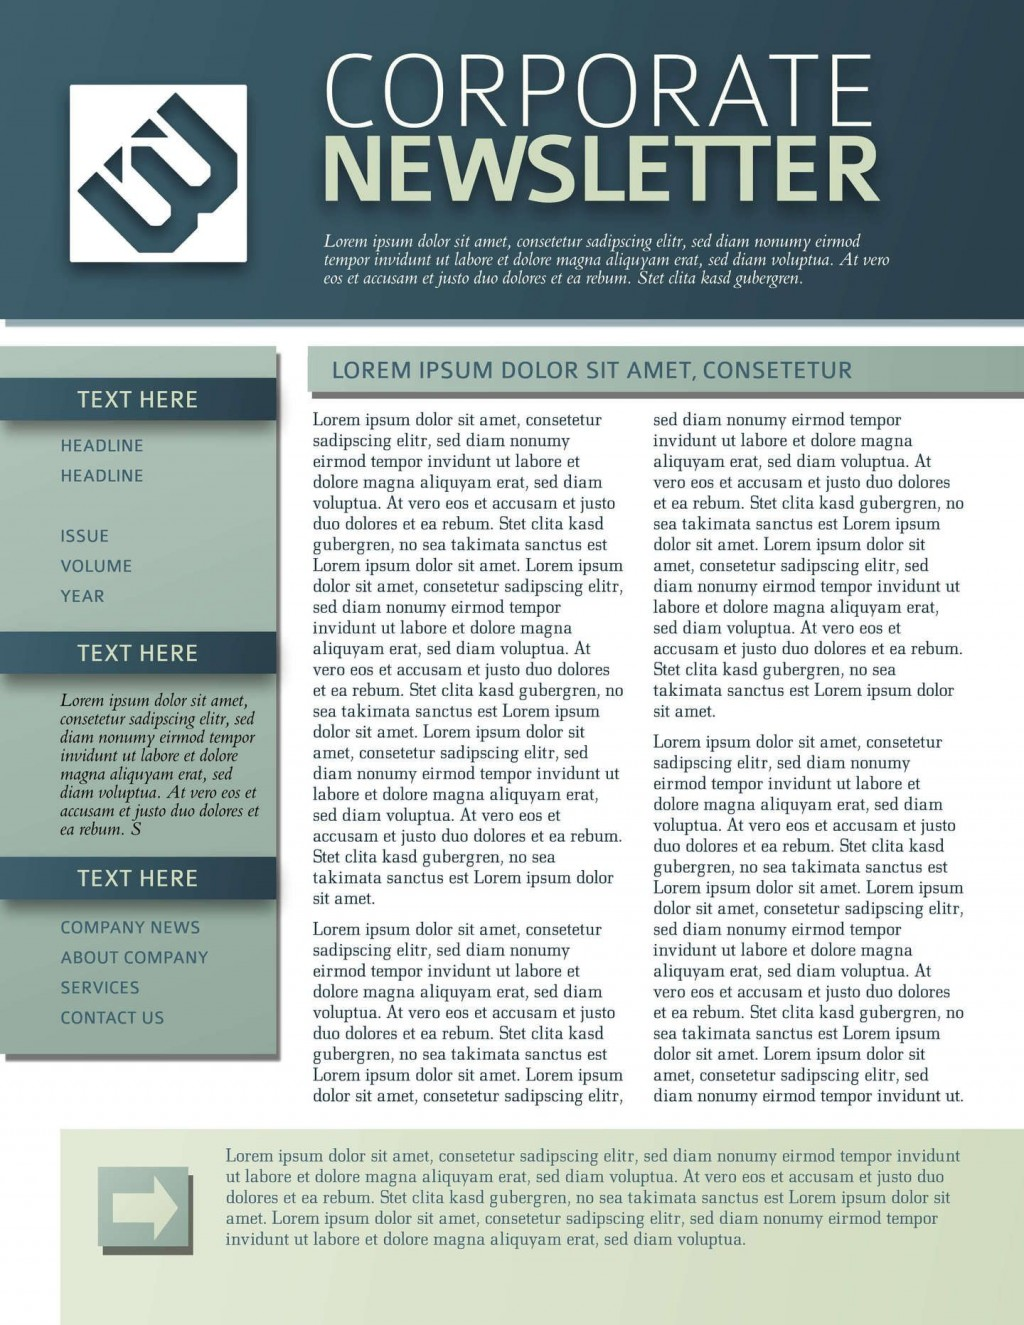 008 Awful Publisher Newsletter Template Free Example  Microsoft Office DownloadLarge